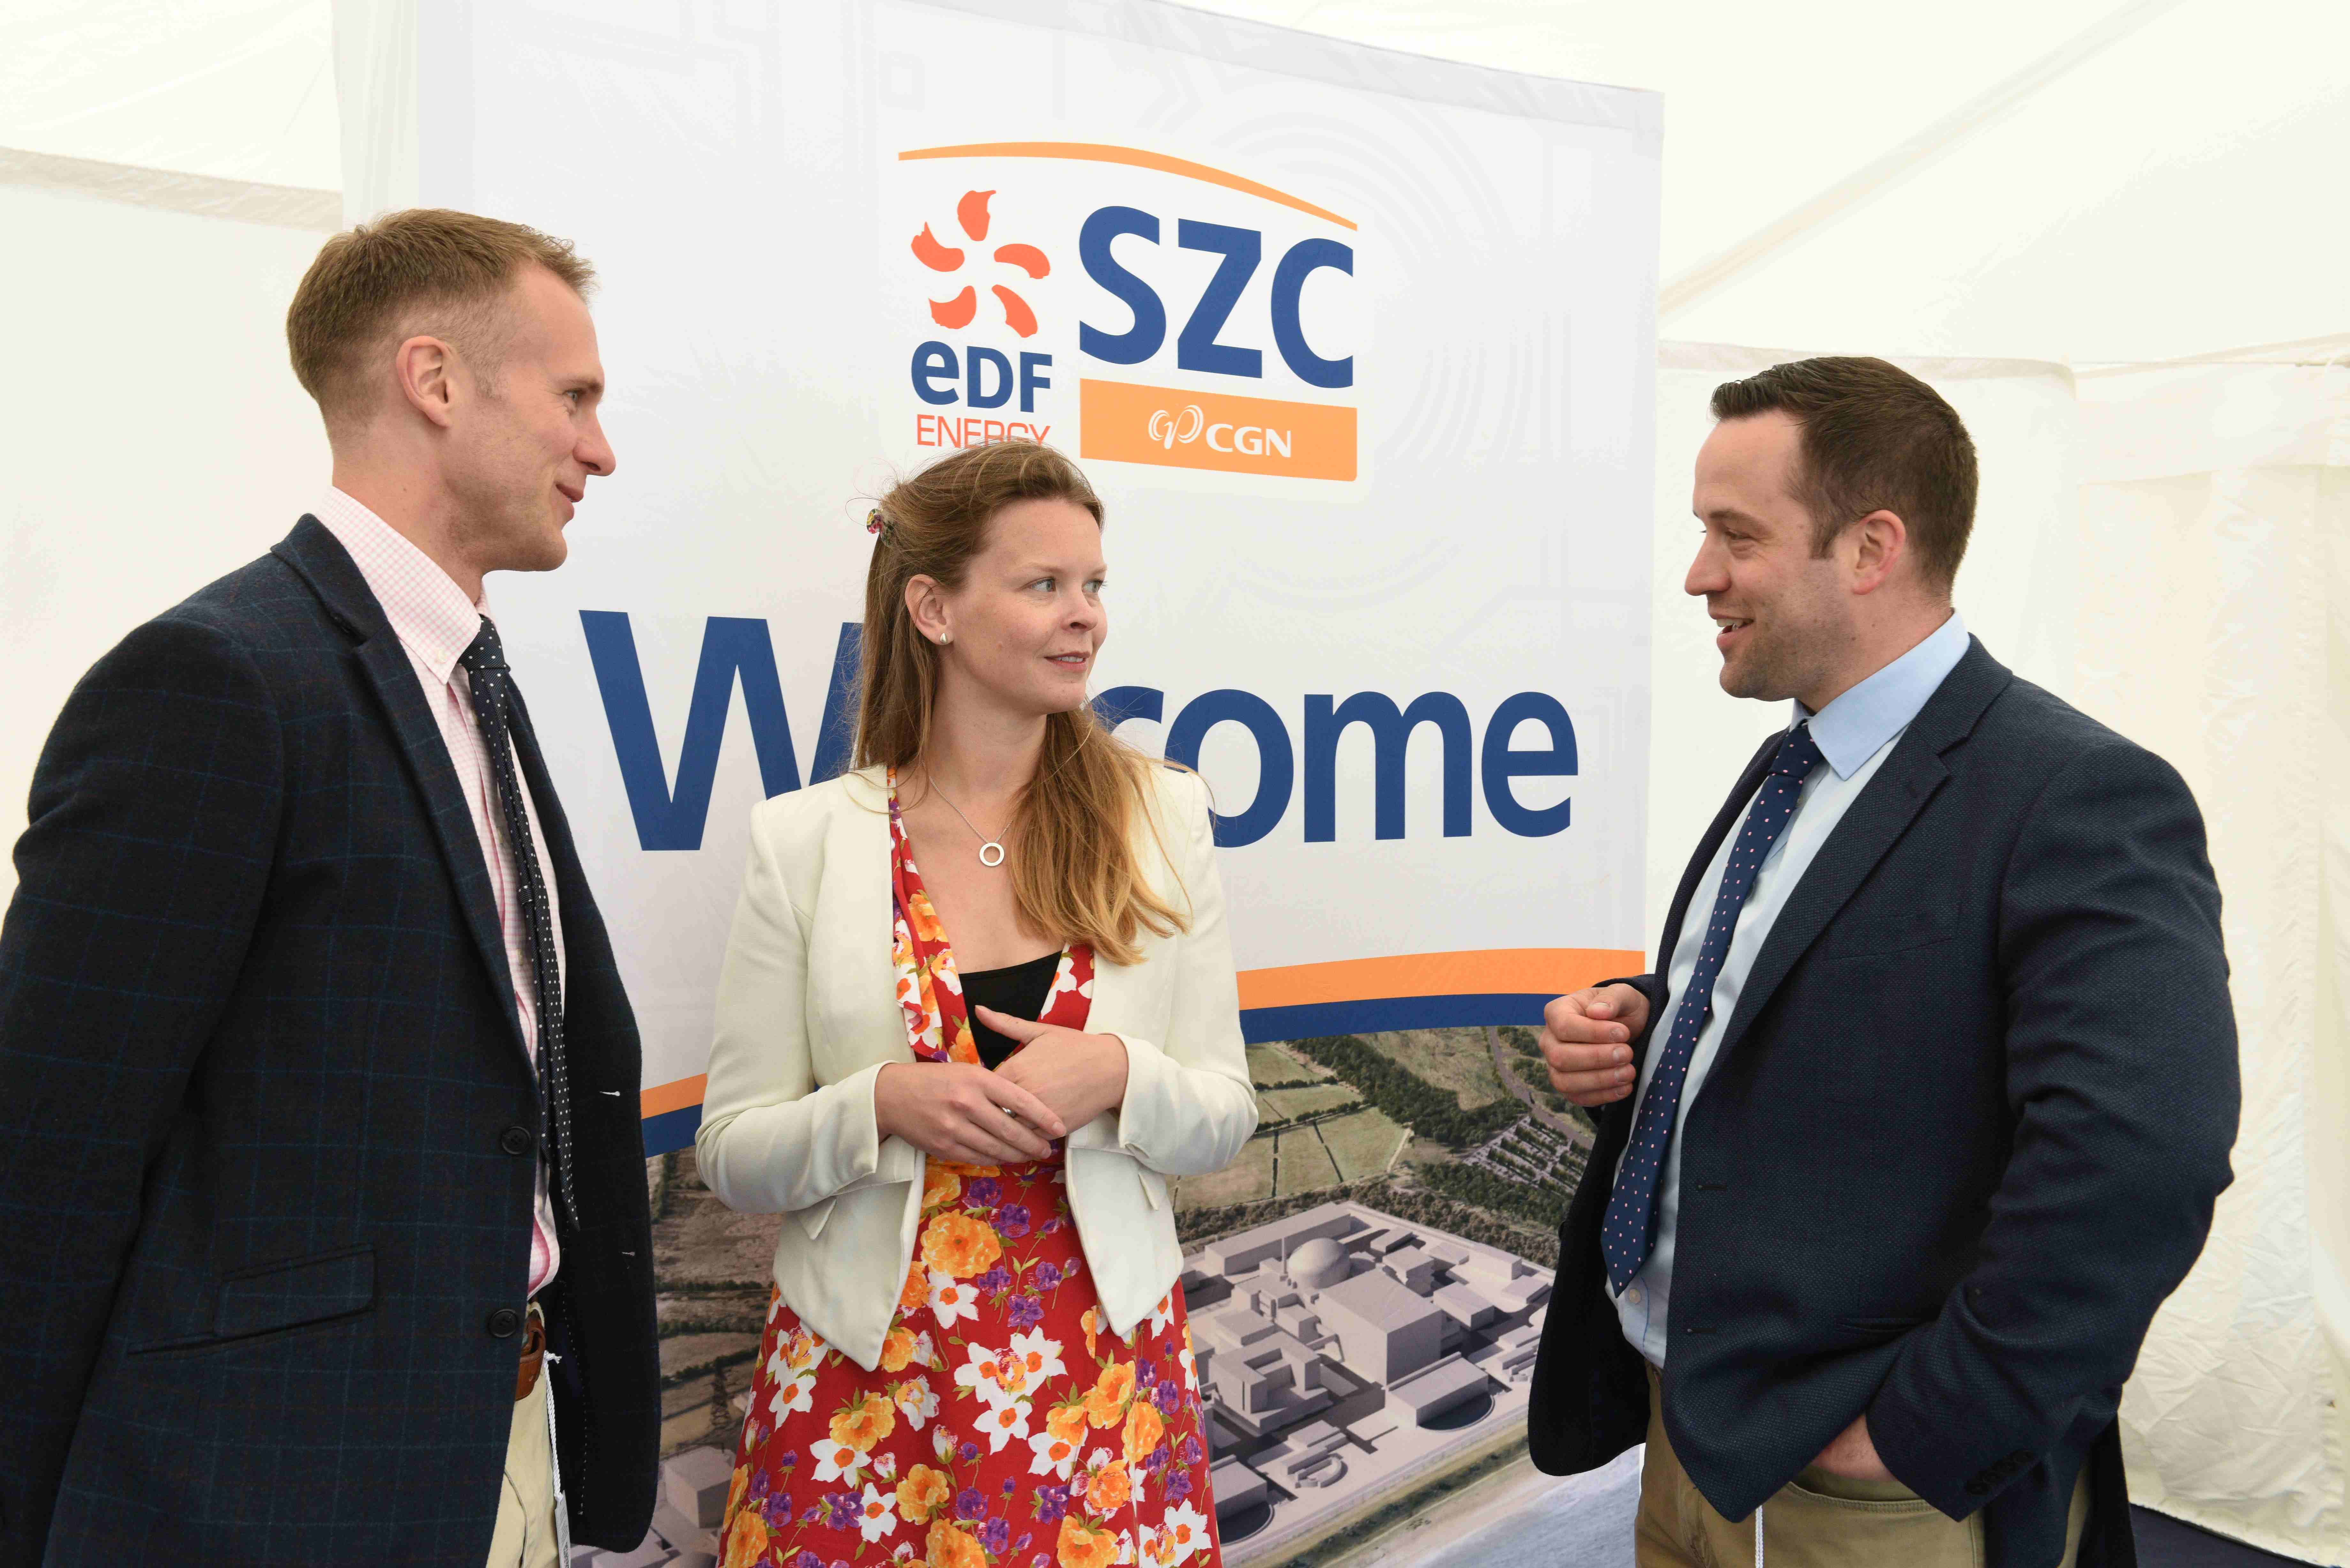 Josh Clarke-Davis (L) and James Gowing (R) from Dalcour Maclaren with Beth Winstone of the Sizewell C project at this year's Suffolk Show